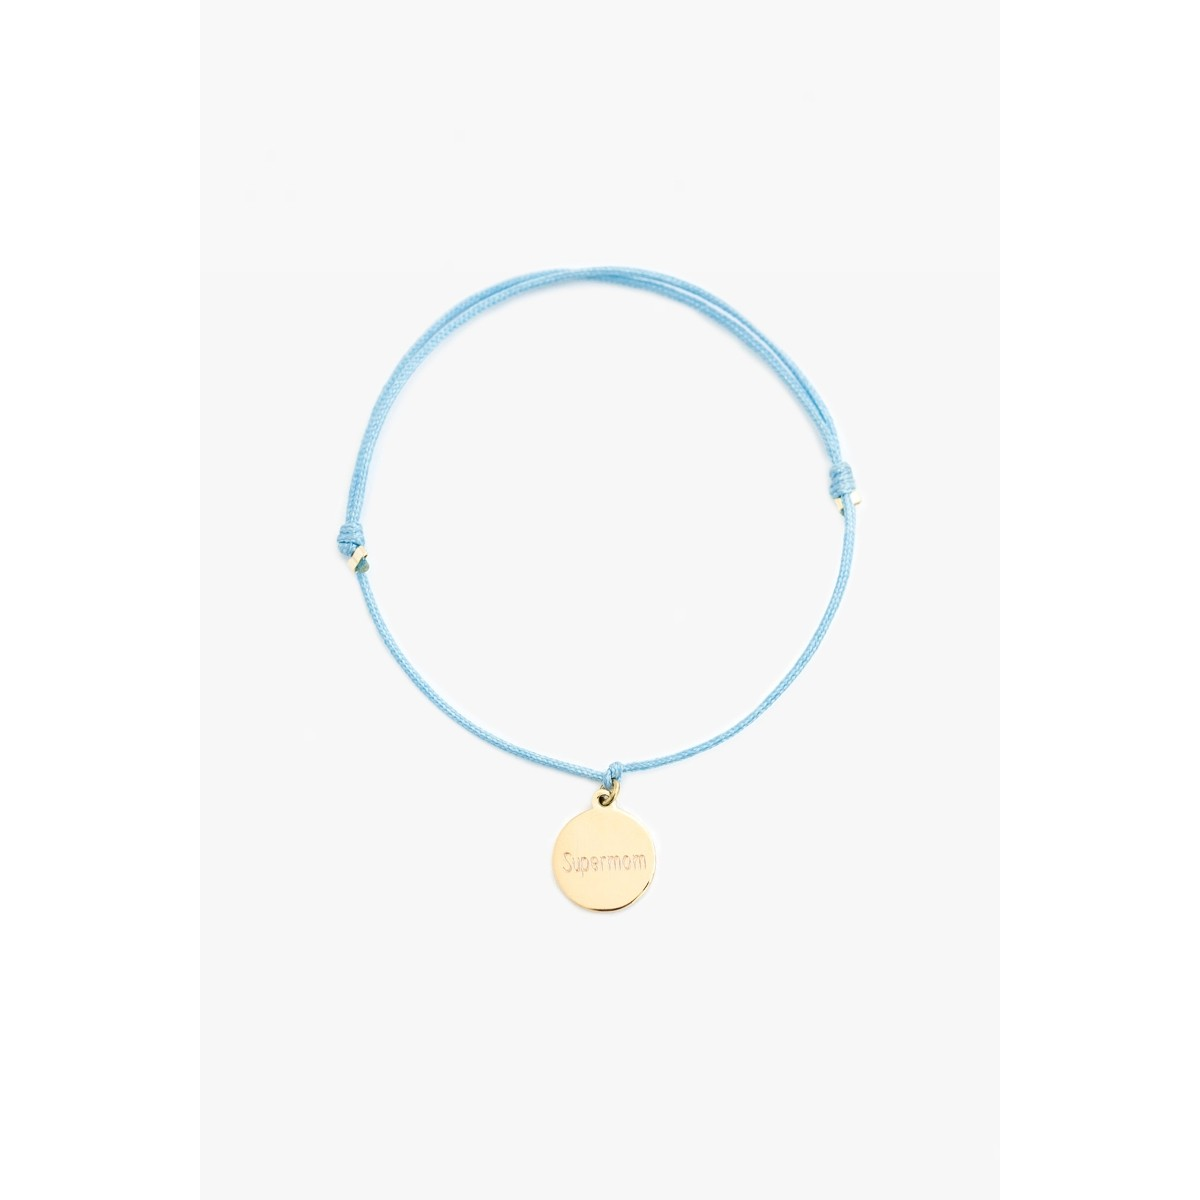 Oh Bracelet Berlin - Armband »Supermom« Farbe Gold